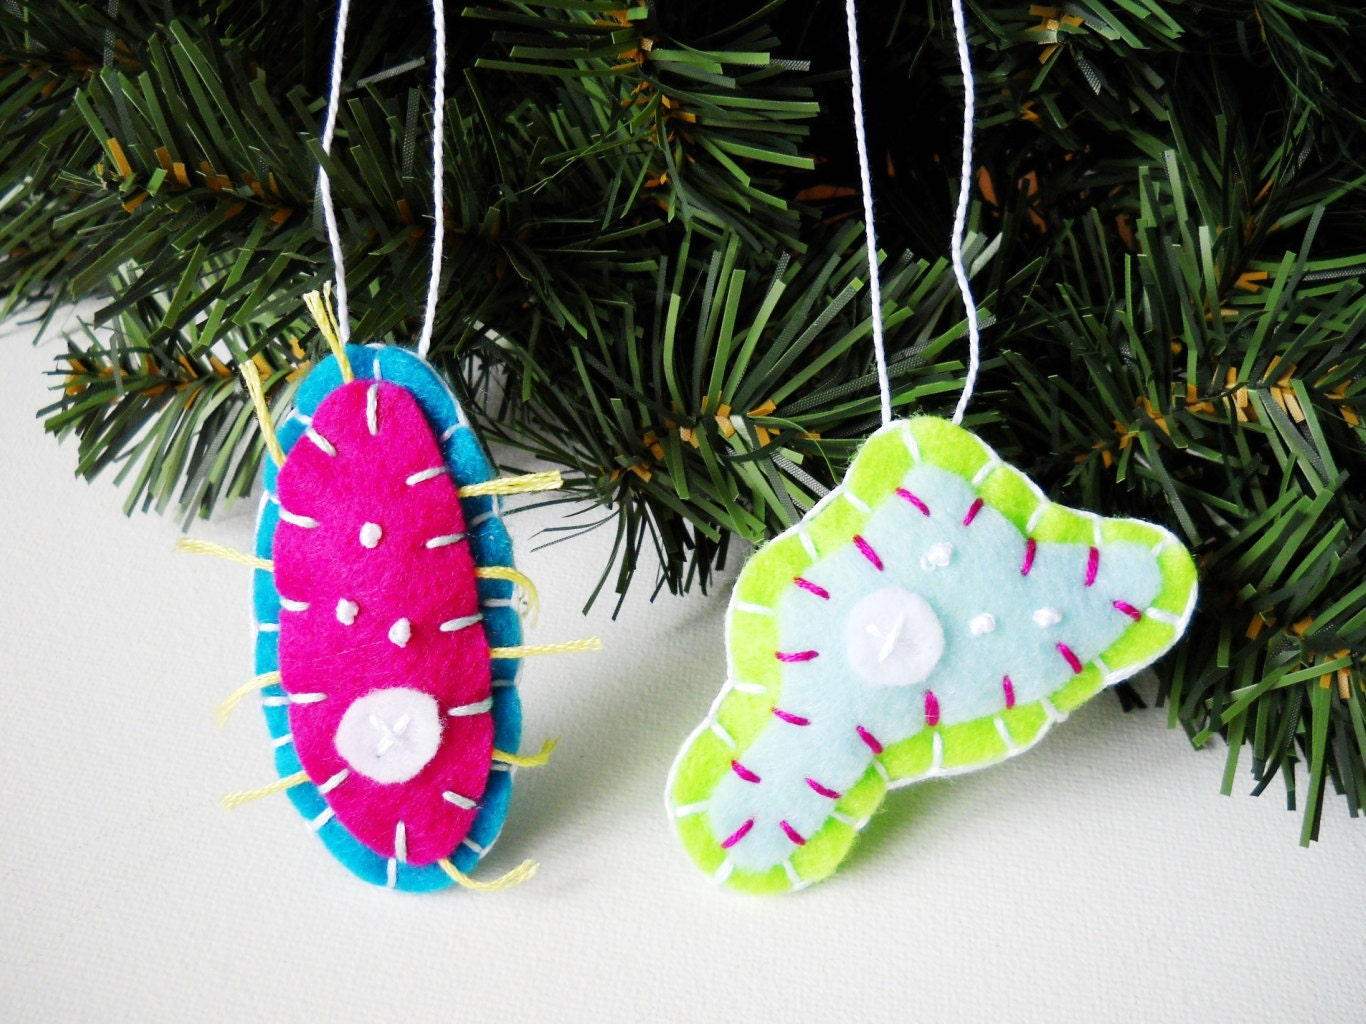 Celling fast: tree ornaments!